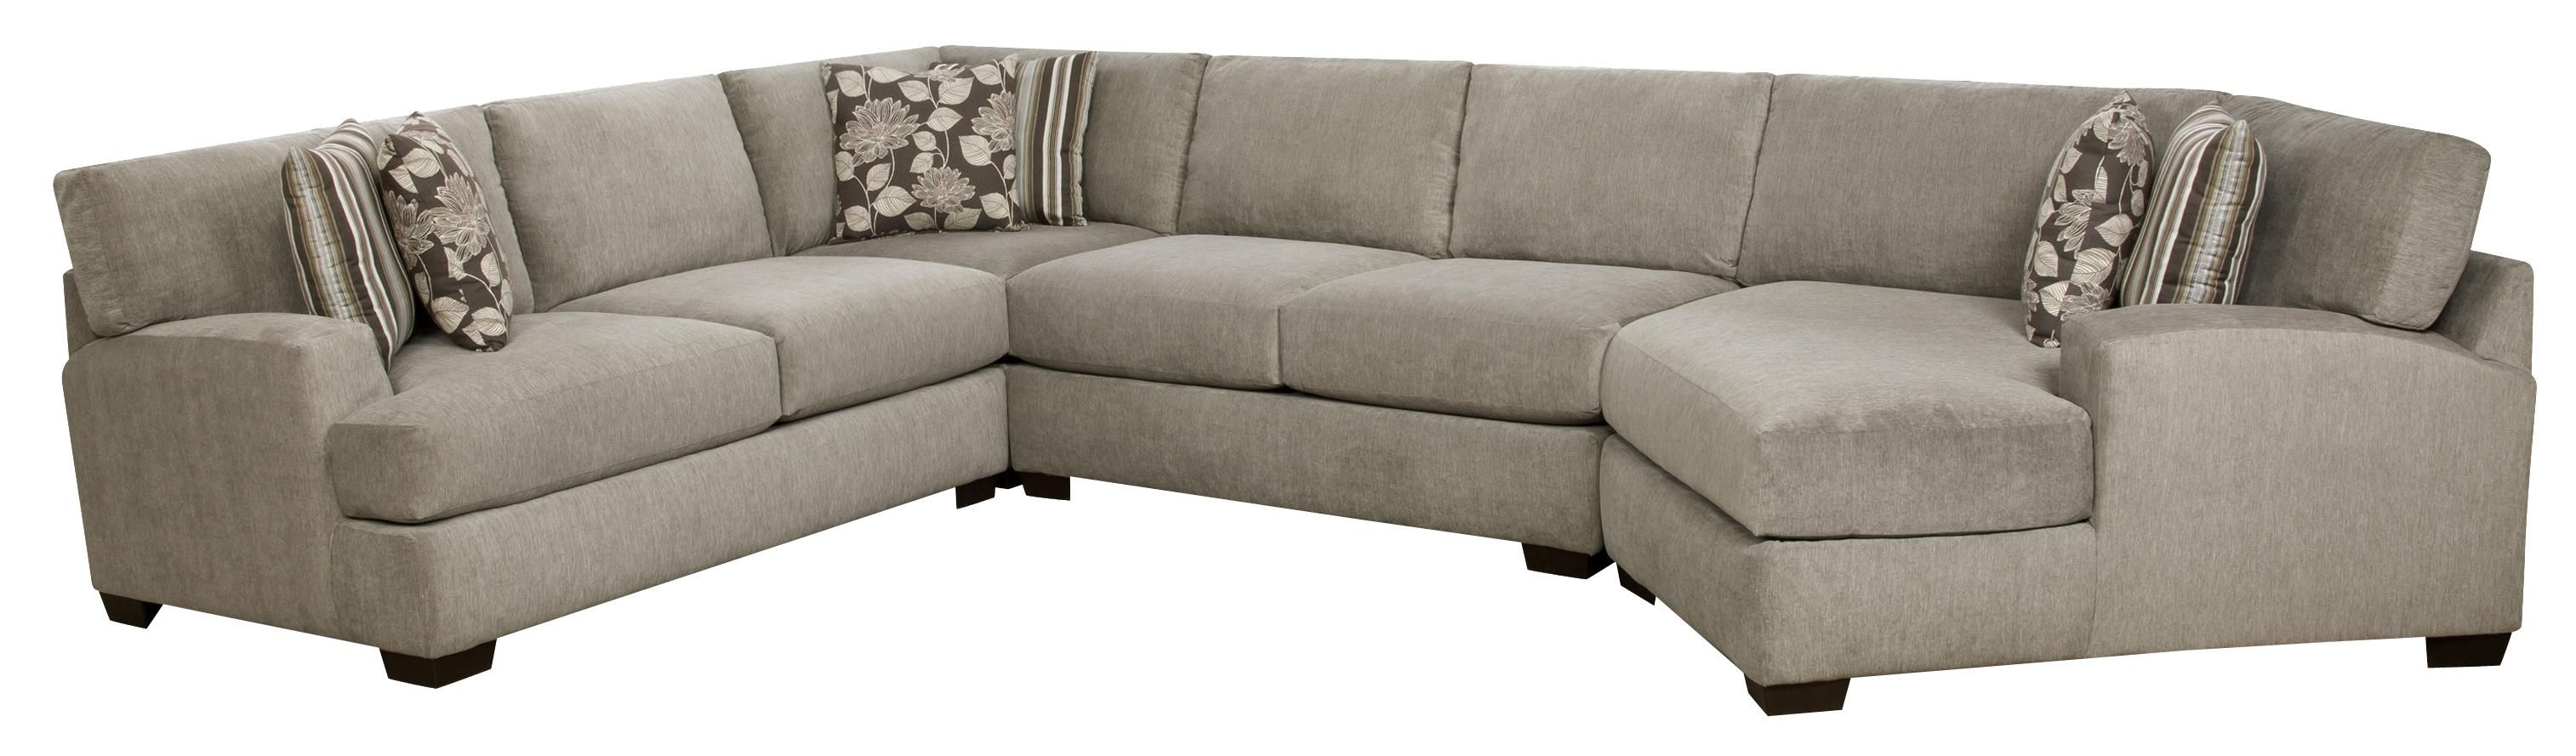 29A0 Sectional Sofa by Corinthian My future home